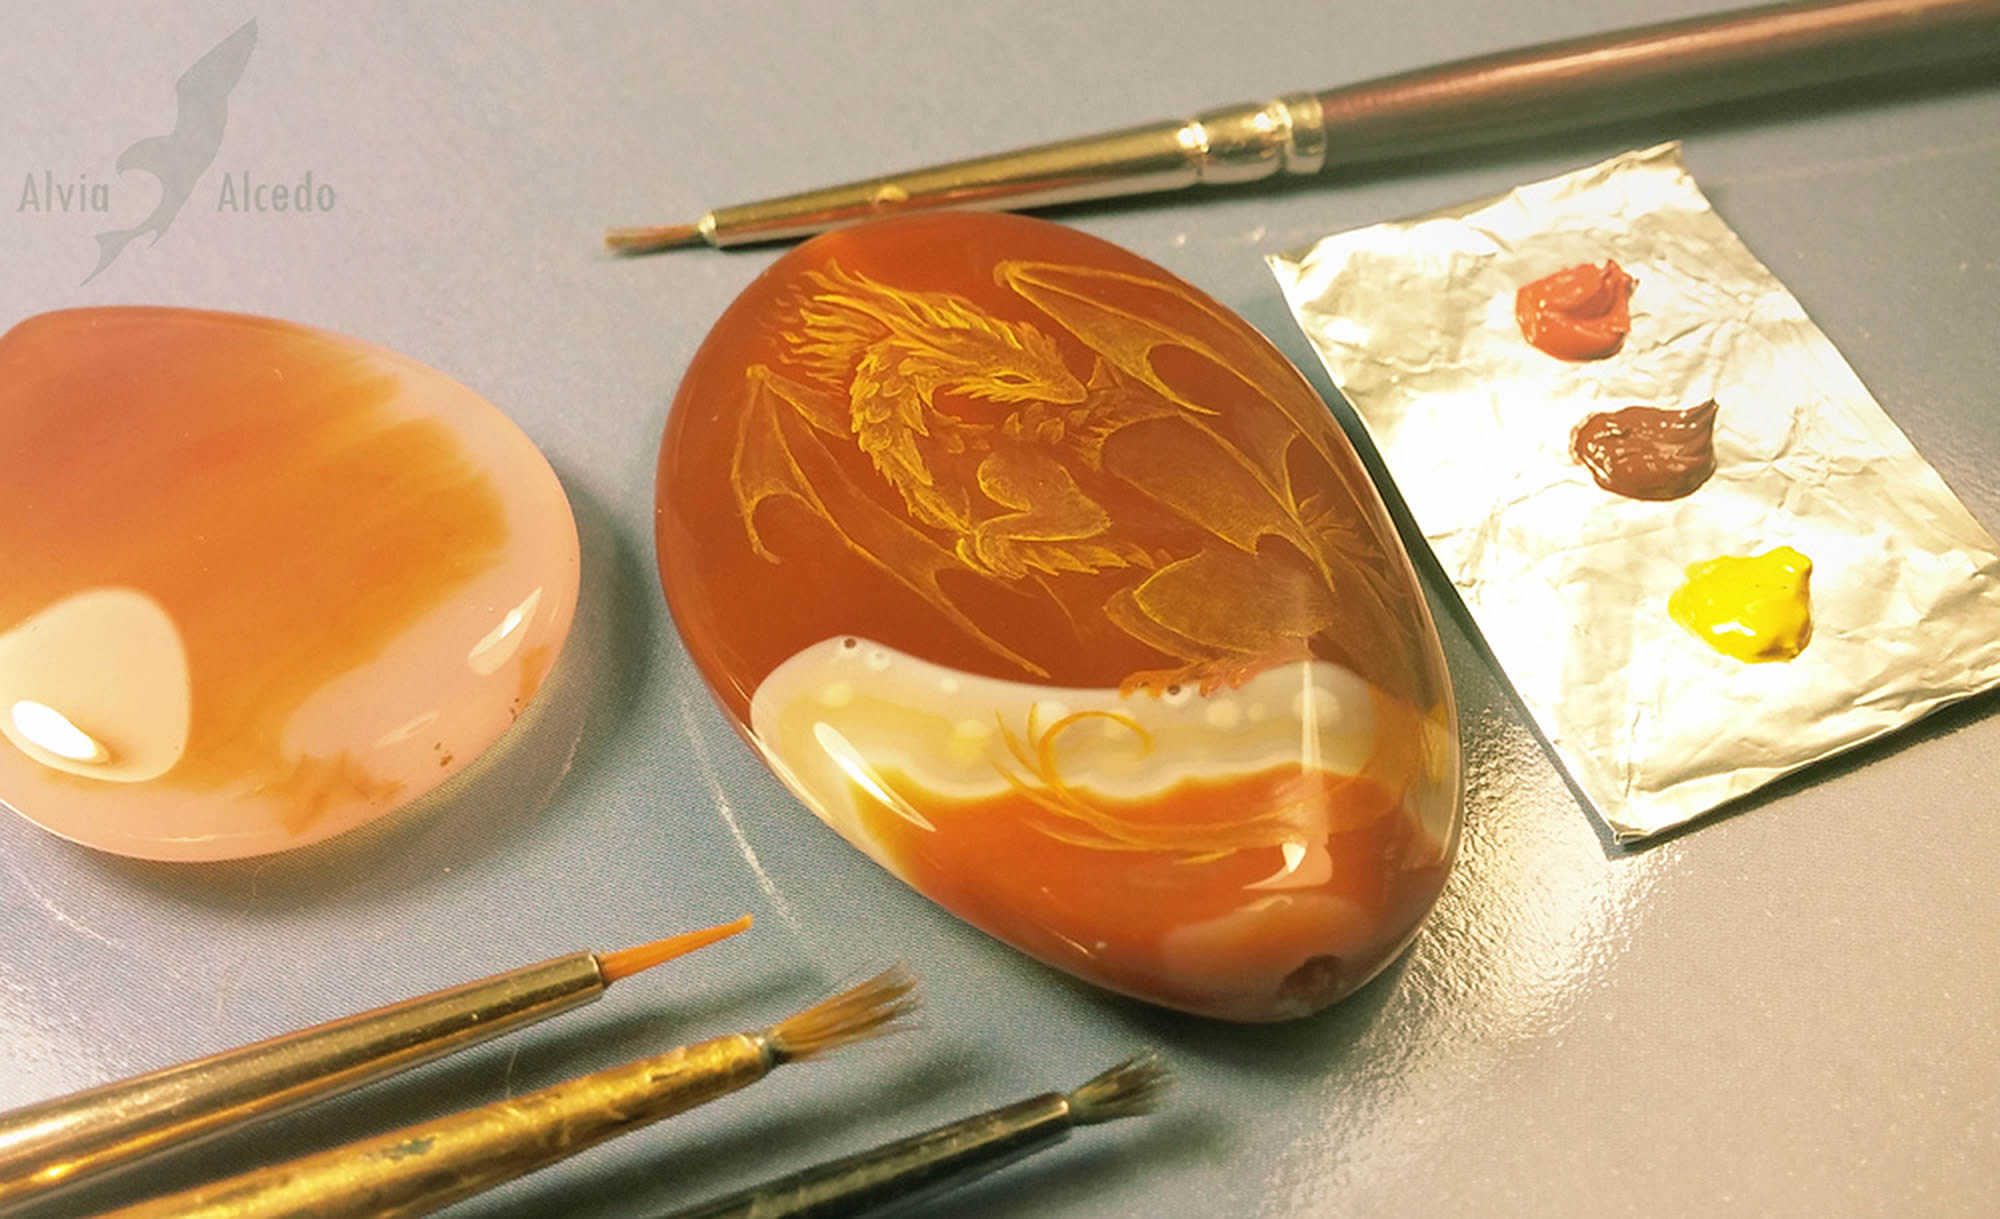 yellow dragon on dark orange stone